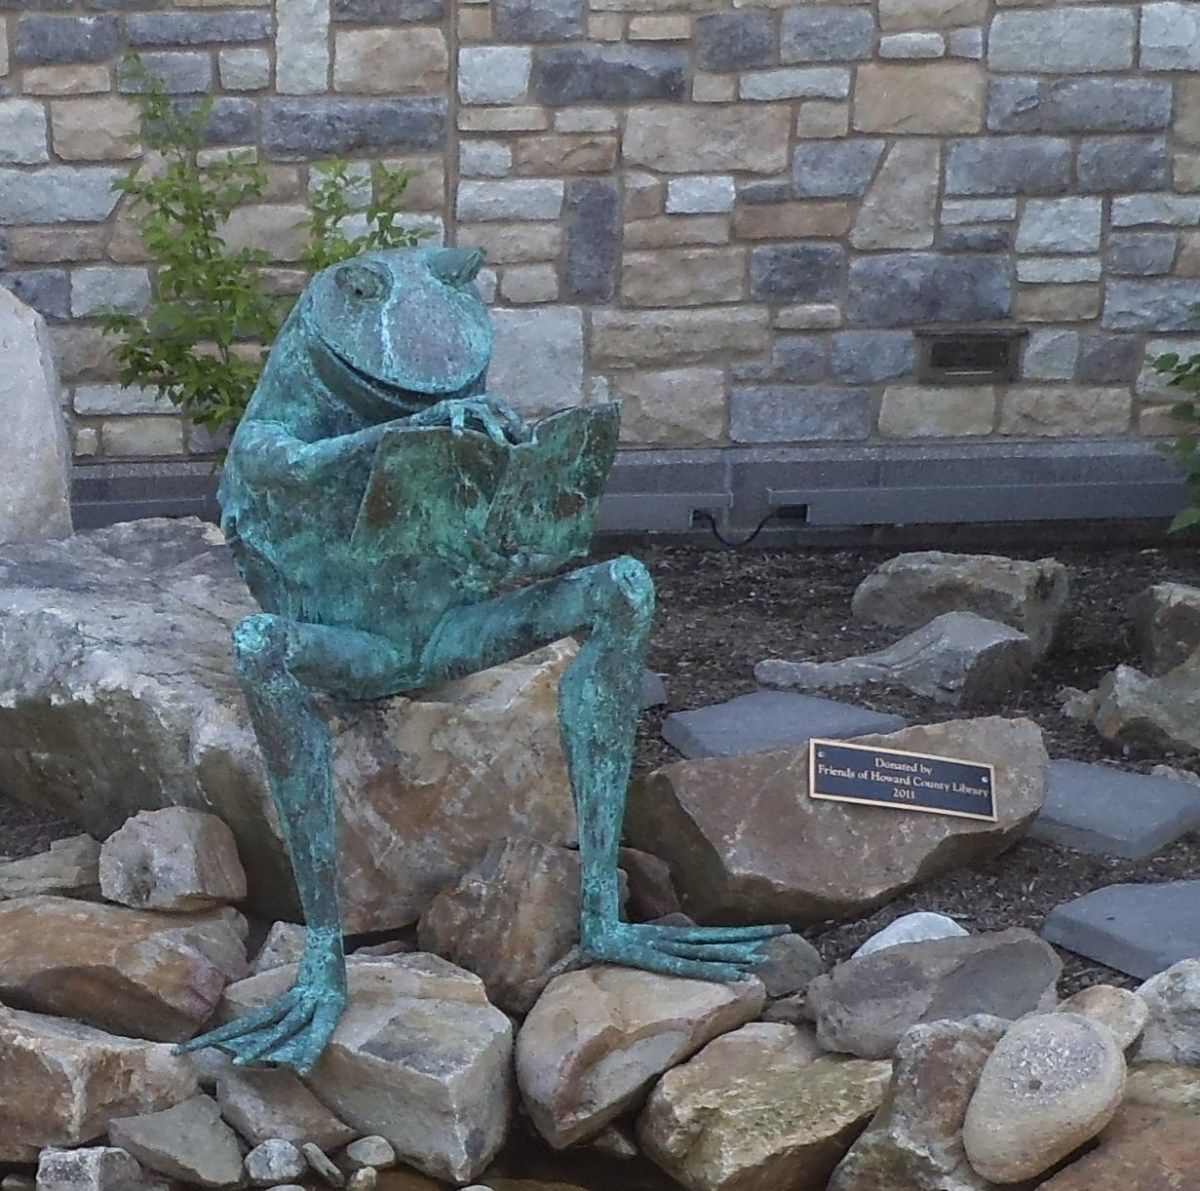 This frog with a book is in the garden at the Ellicott City Branch of the Howard County Library System.  When I worked at the Towson Branch of BCPL in Maryland, there was a large tortoise statue in the children's area. Children loved to sit on it.